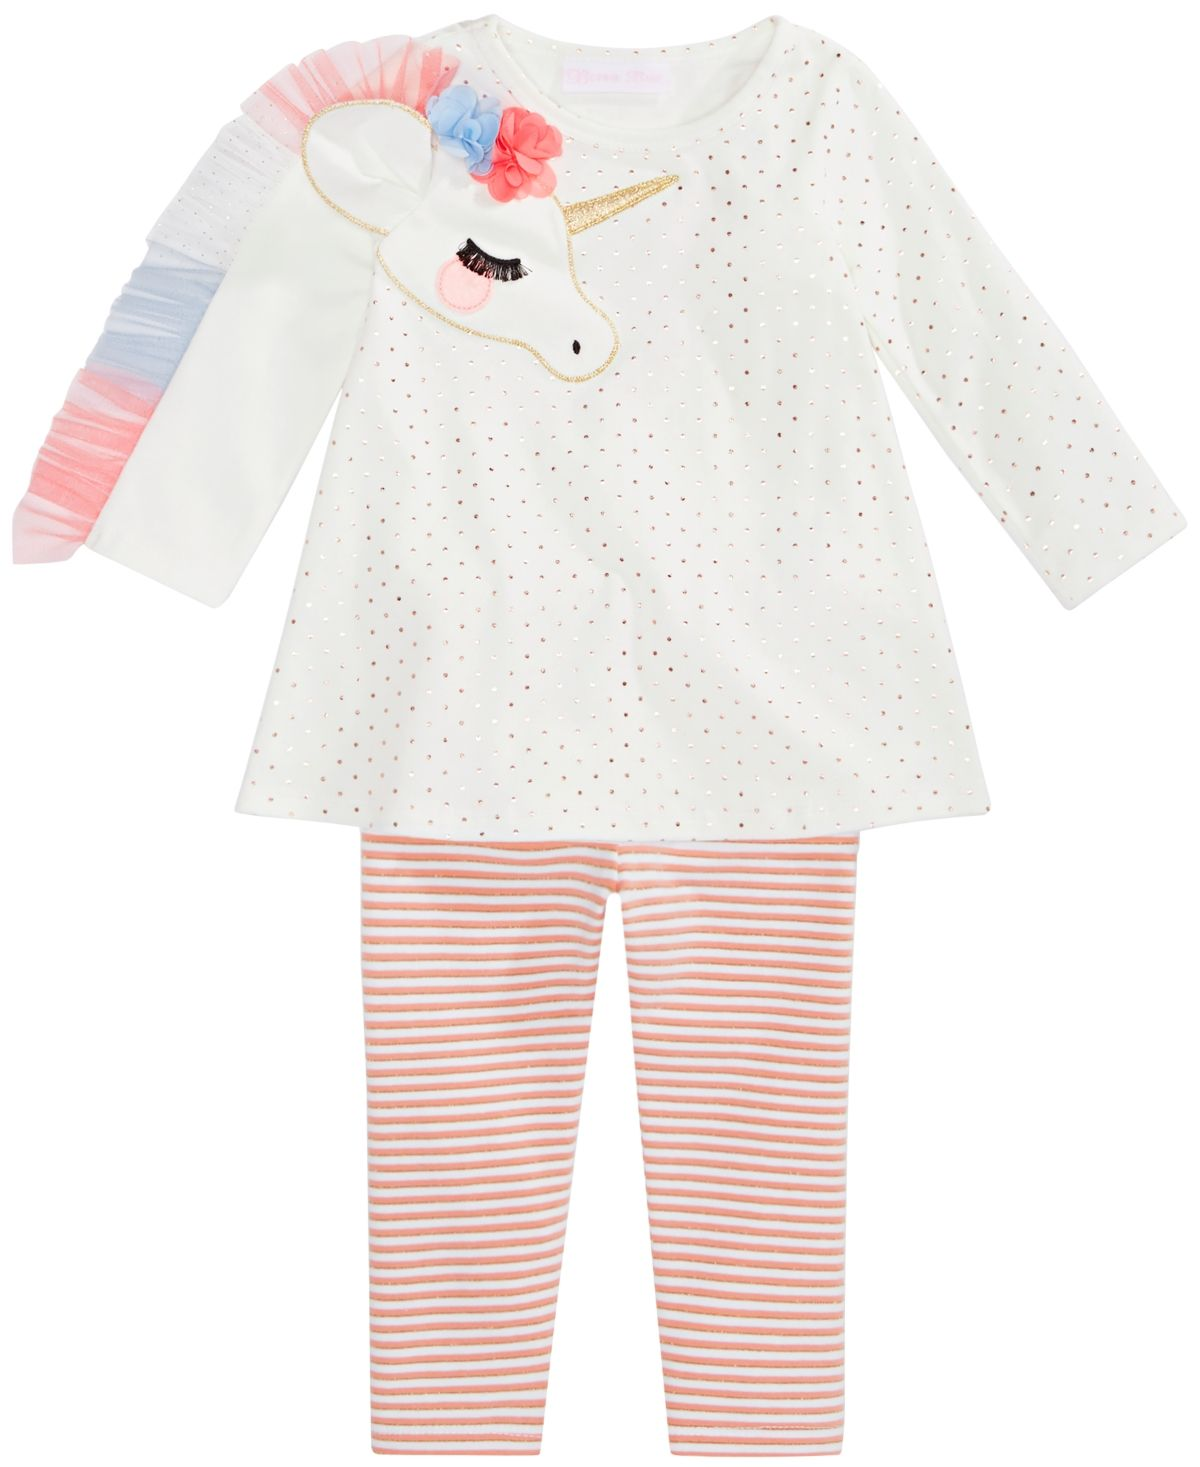 Baby Girls Unicorn Tunic & Striped Leggings Set #stripedleggings